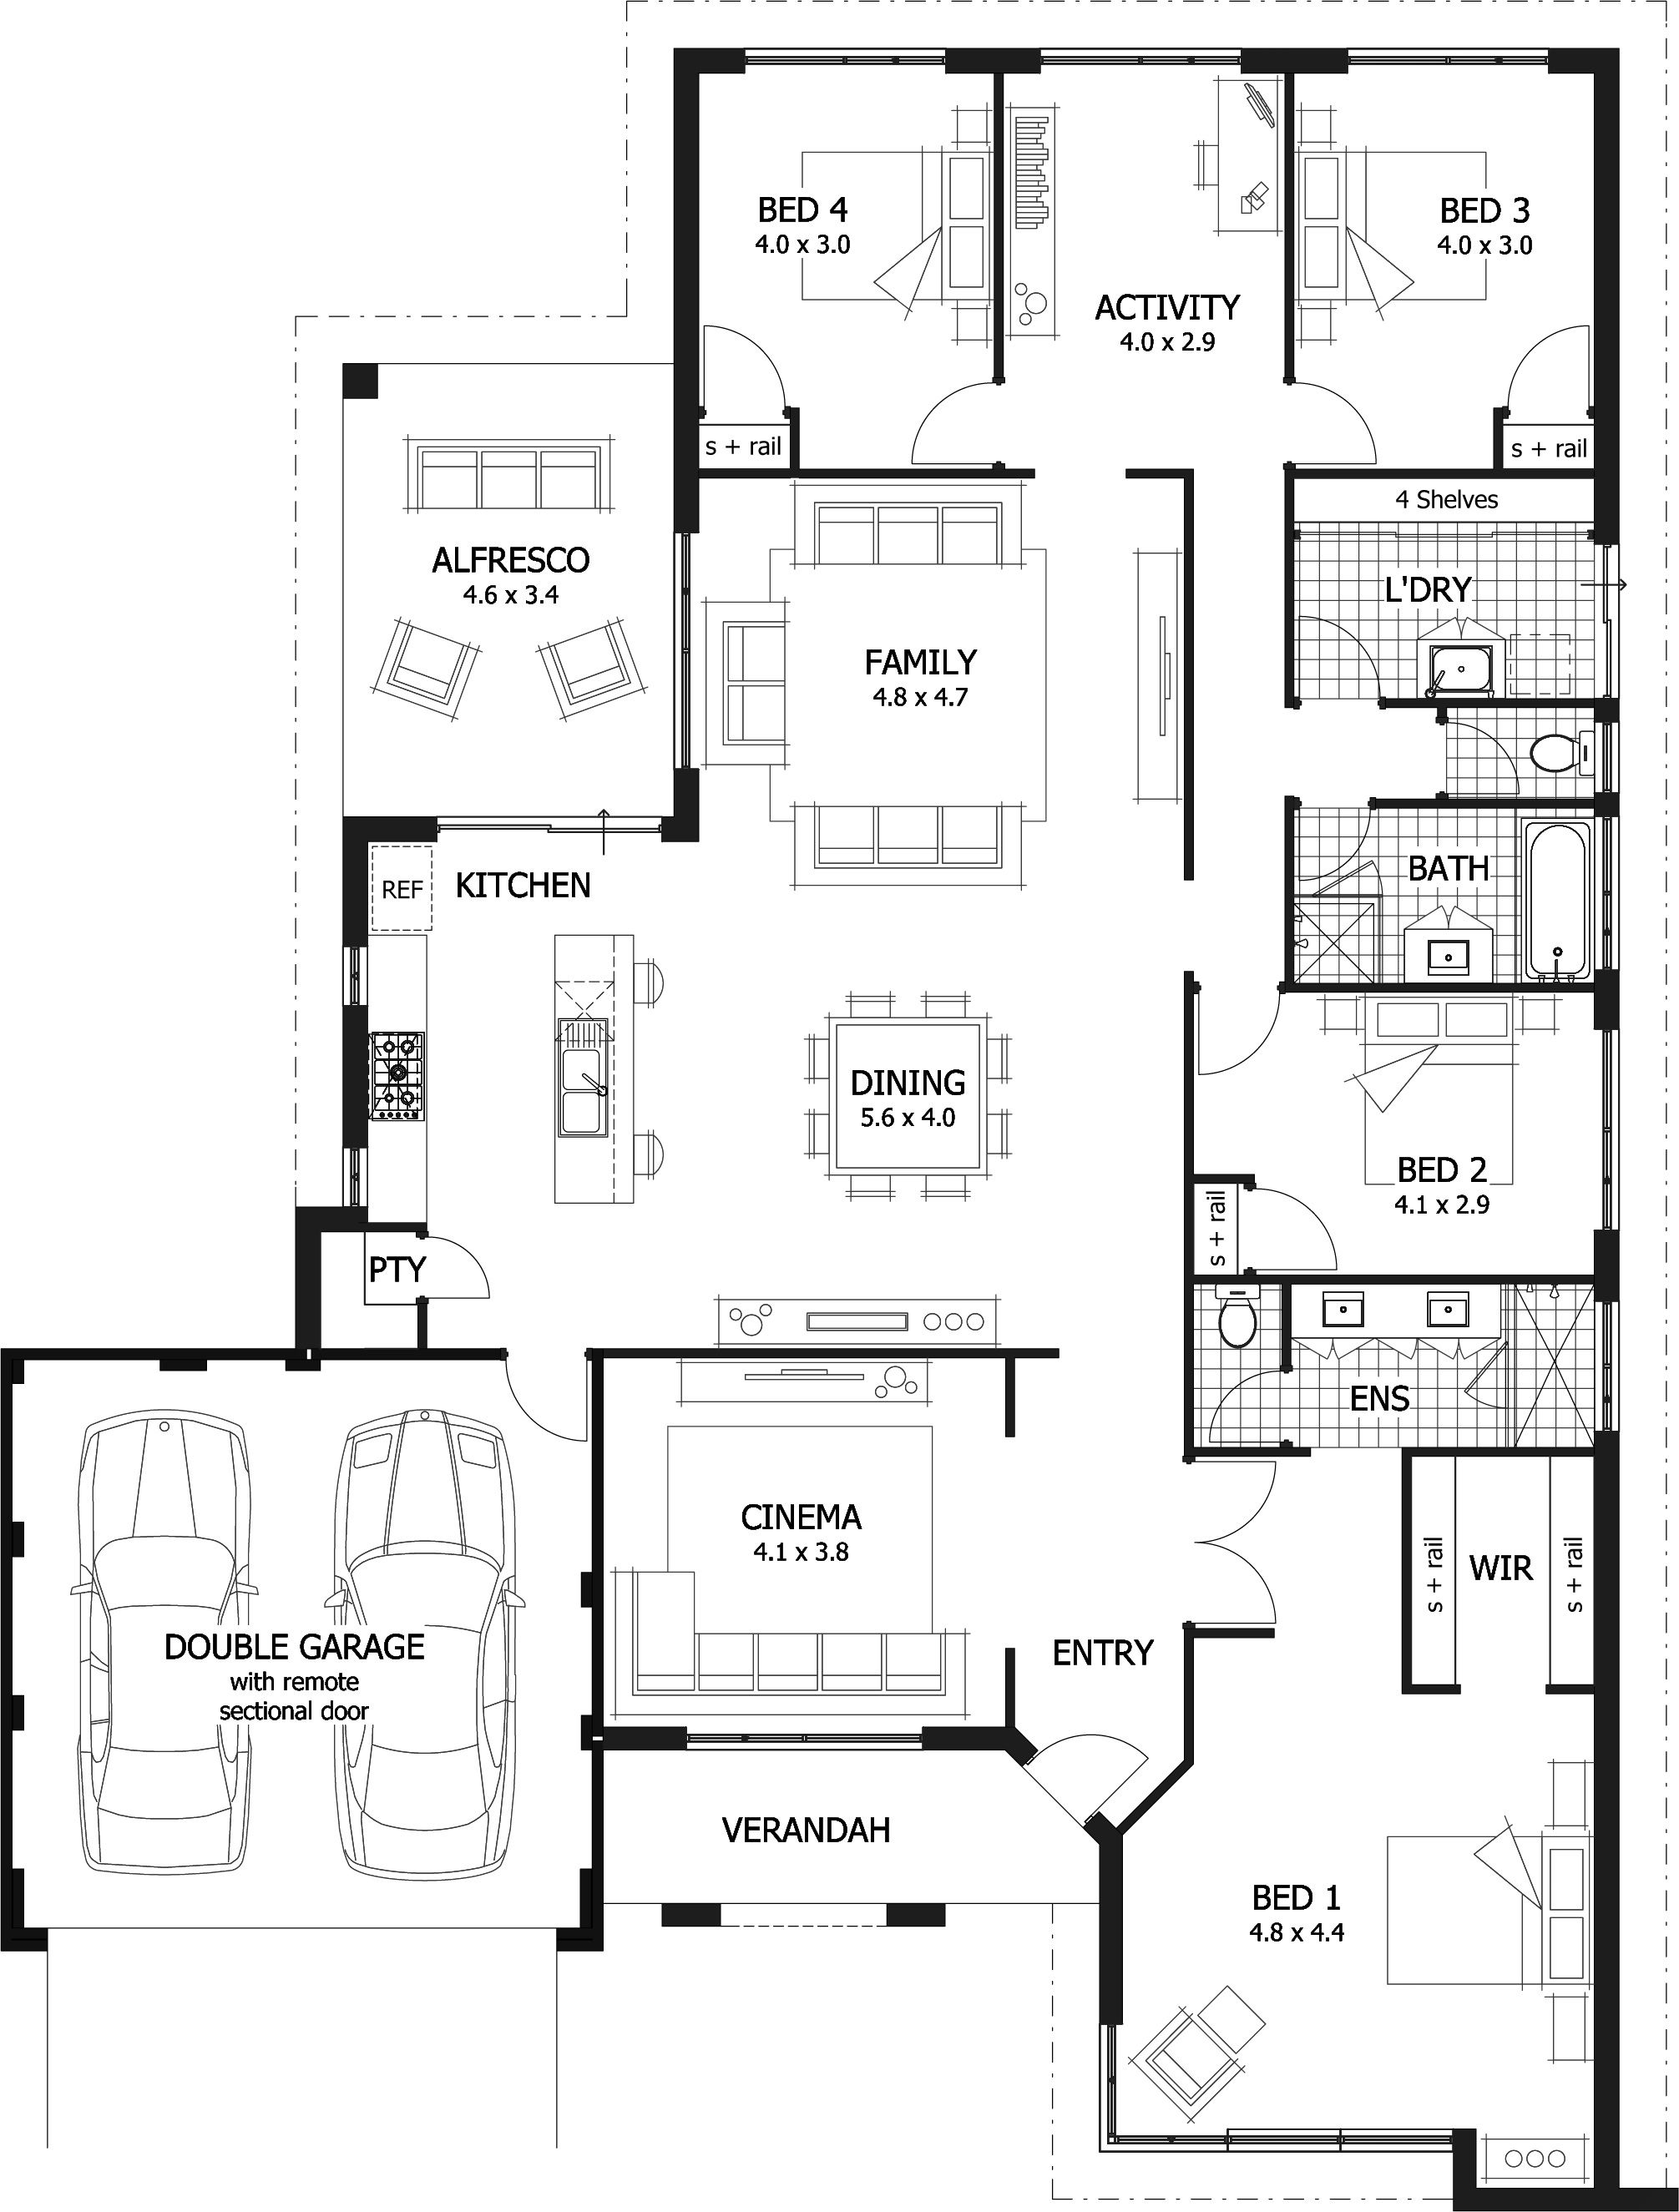 Find A 4 Bedroom Home That 39 S Right For You From Our: house plans usa